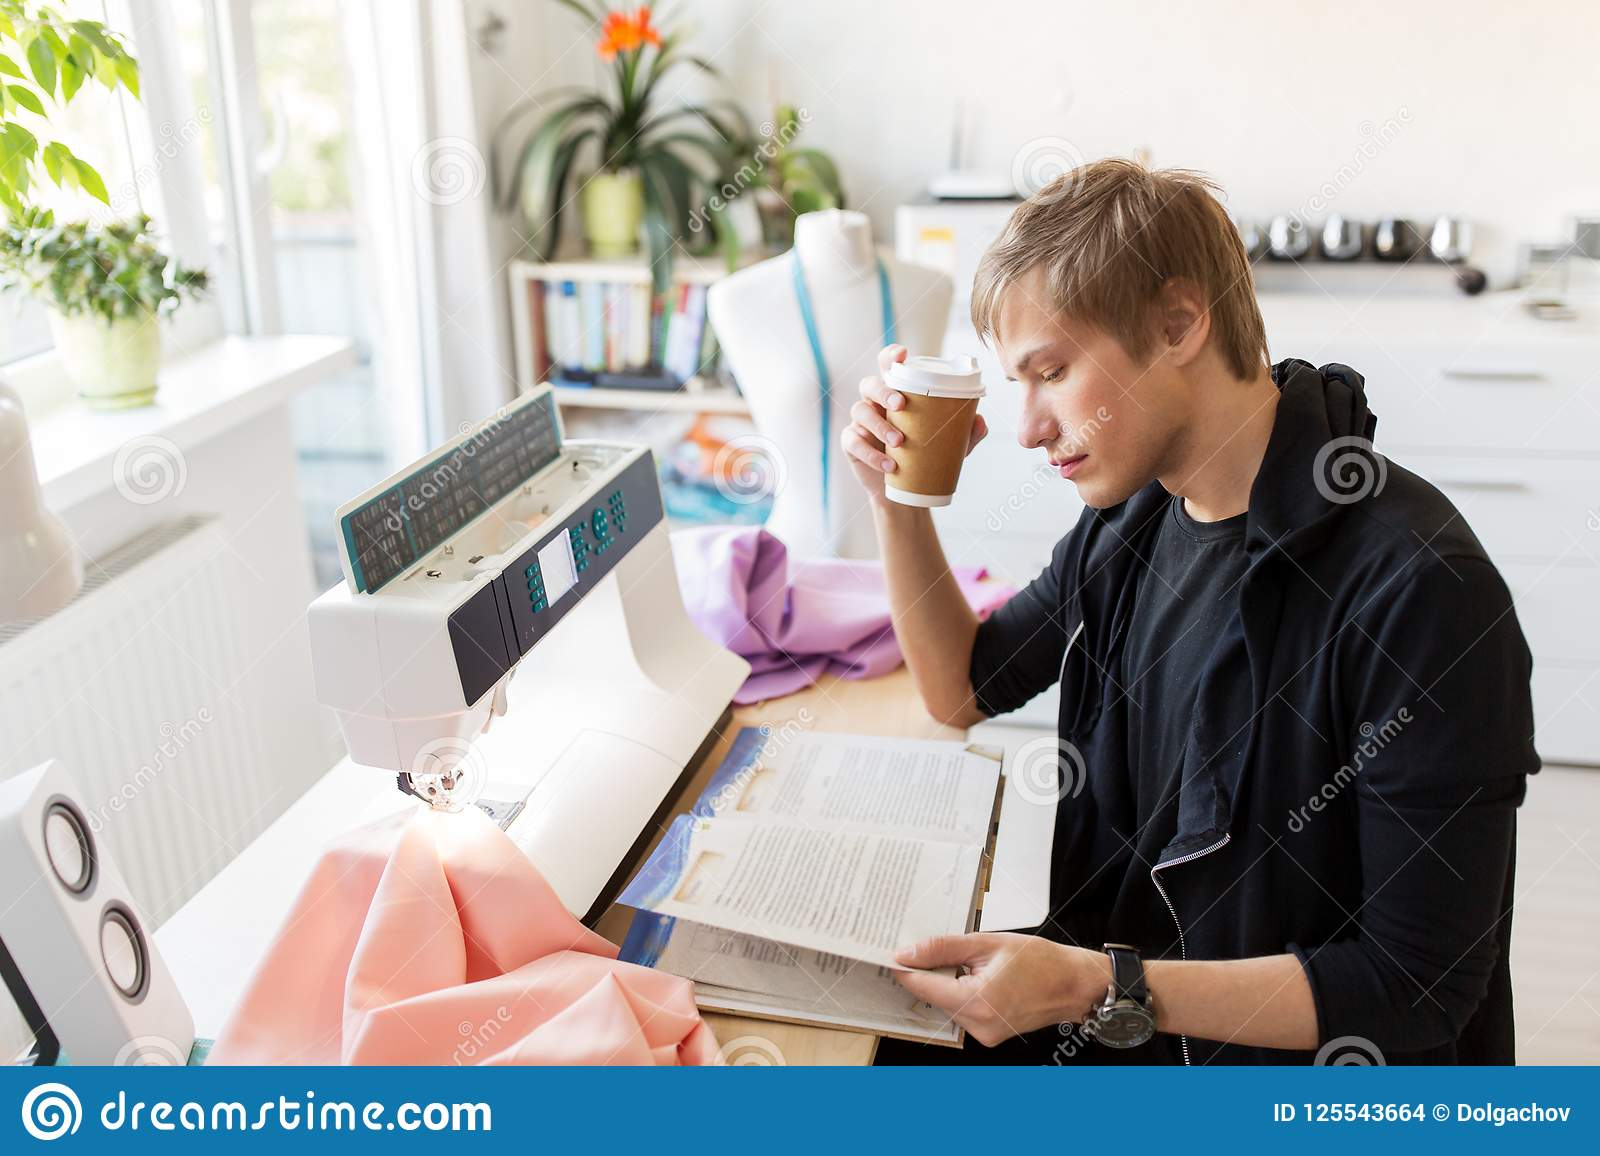 Fashion Designer With Coffee And Book At Studio Stock Photo Image Of Clothes Beverage 125543664